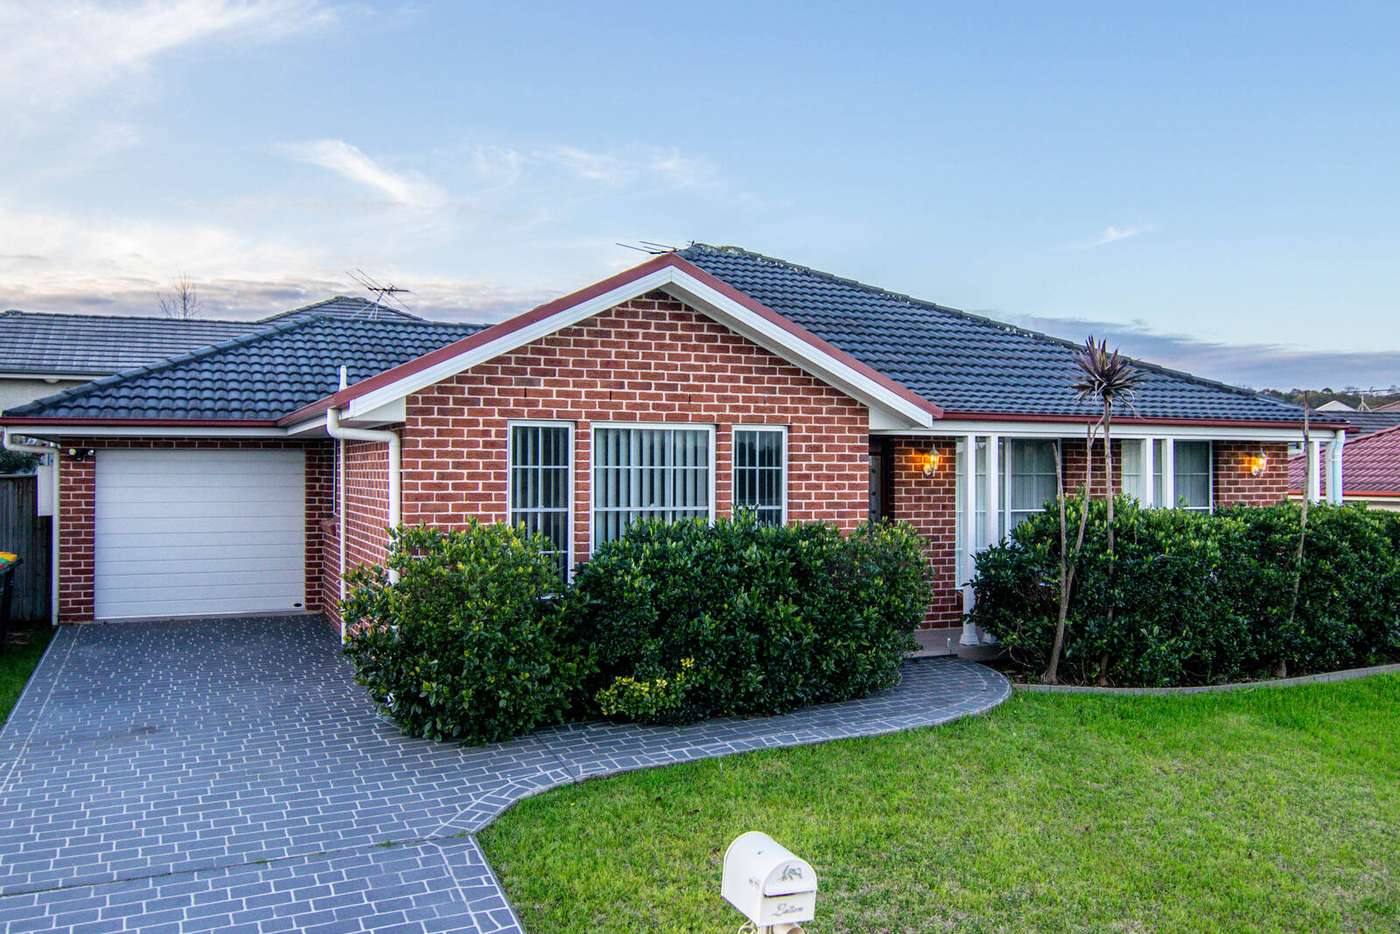 Main view of Homely house listing, 116 Dalwood Road, East Branxton NSW 2335